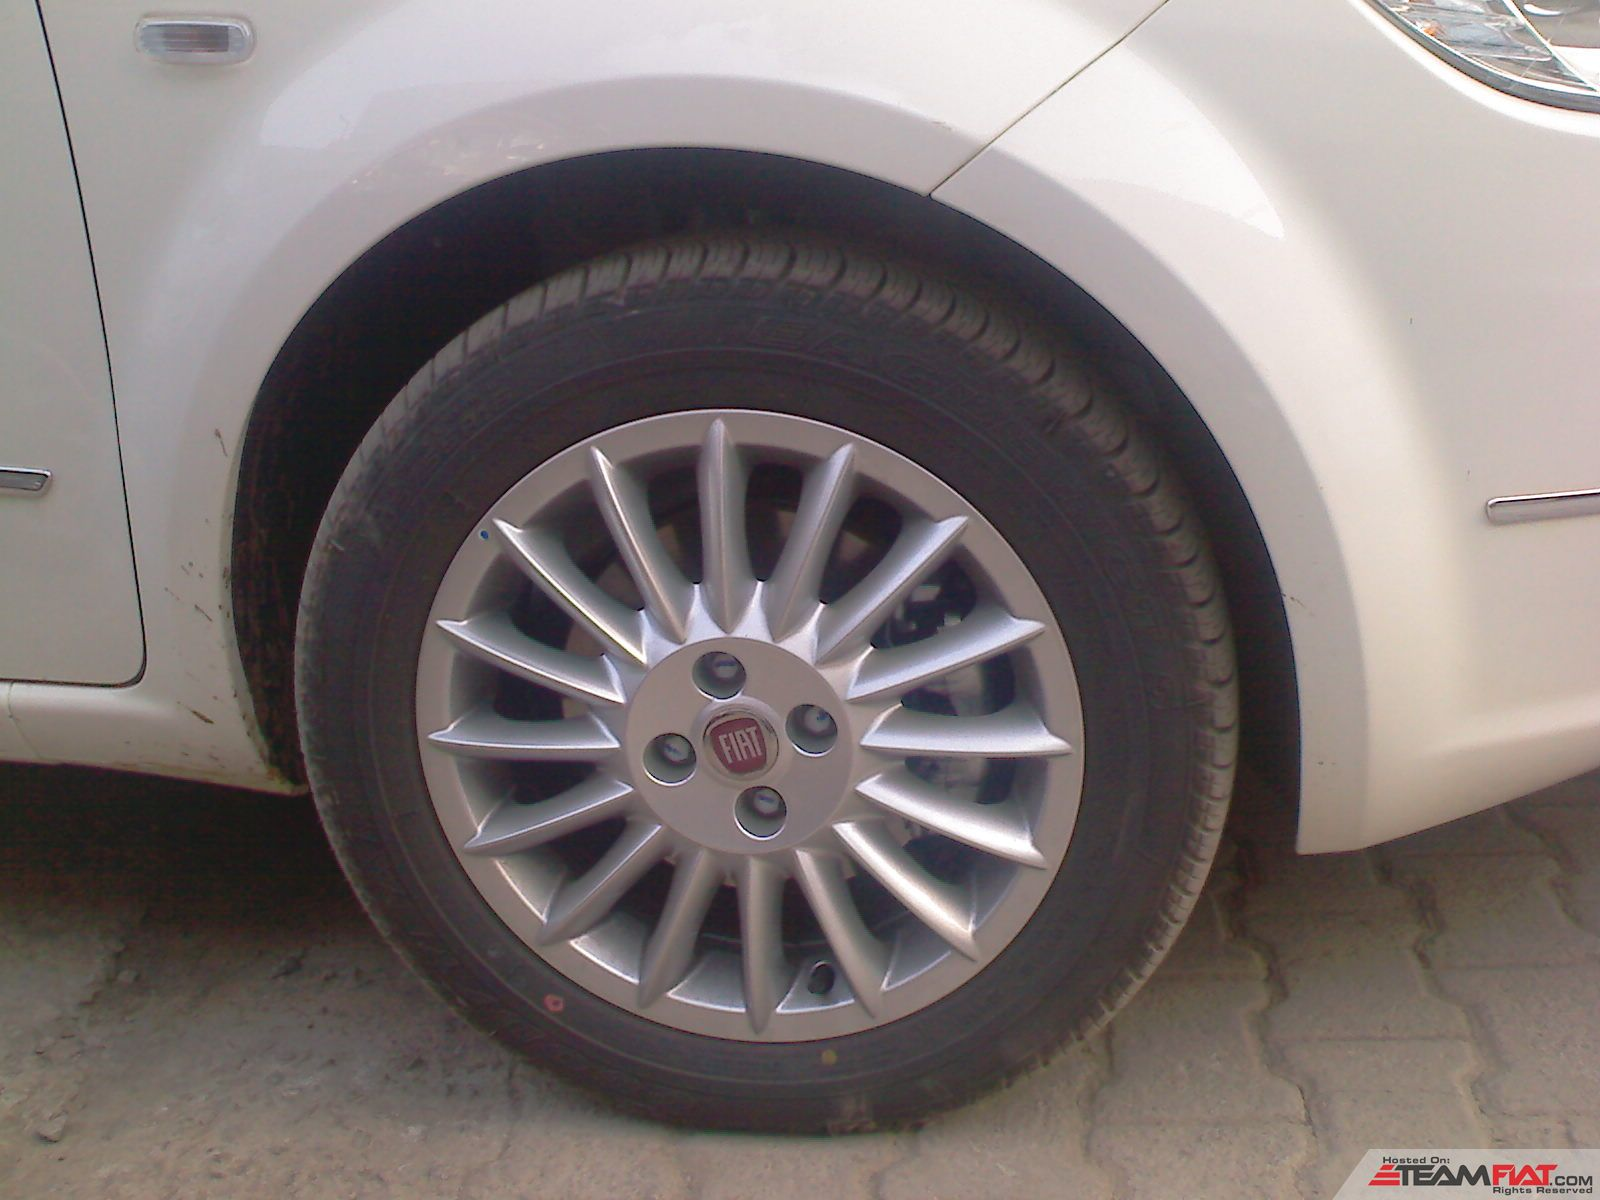 \' Alloy wheels.jpg